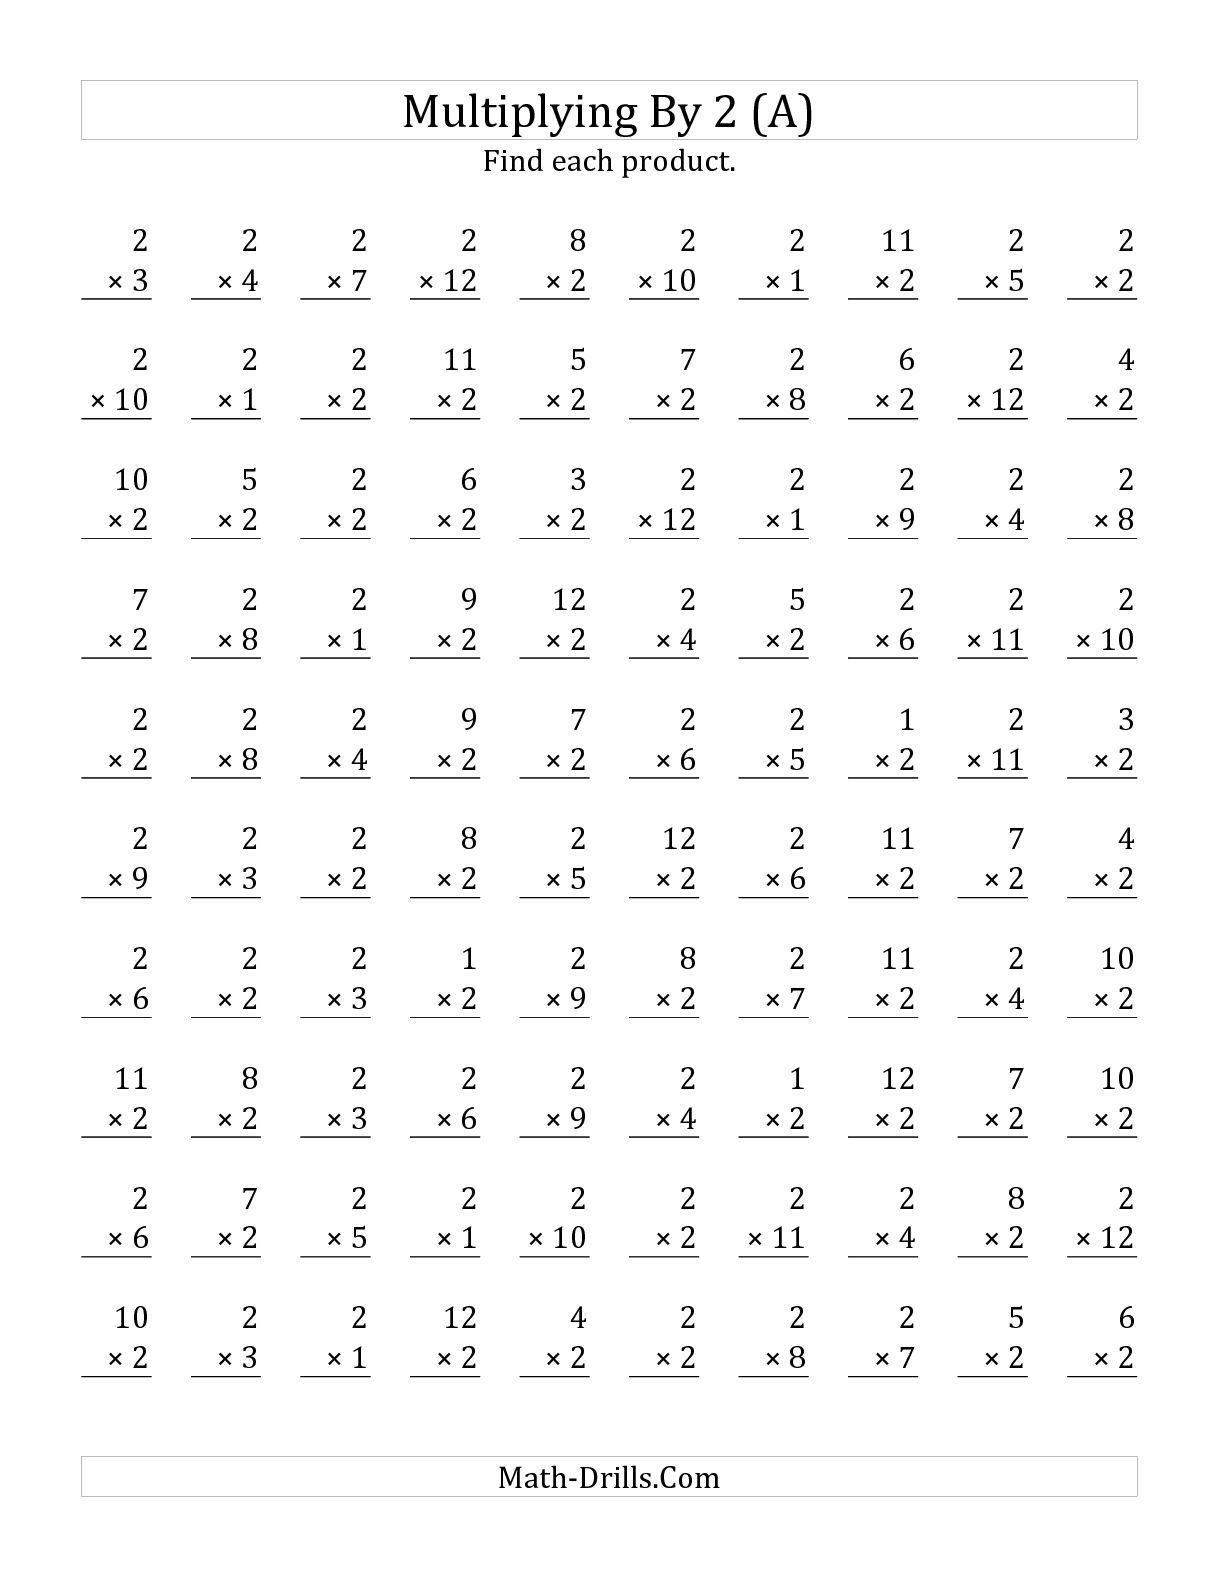 2 by 1 Multiplication Worksheets the Multiplying 1 to 12 by 2 A Math Worksheet From the